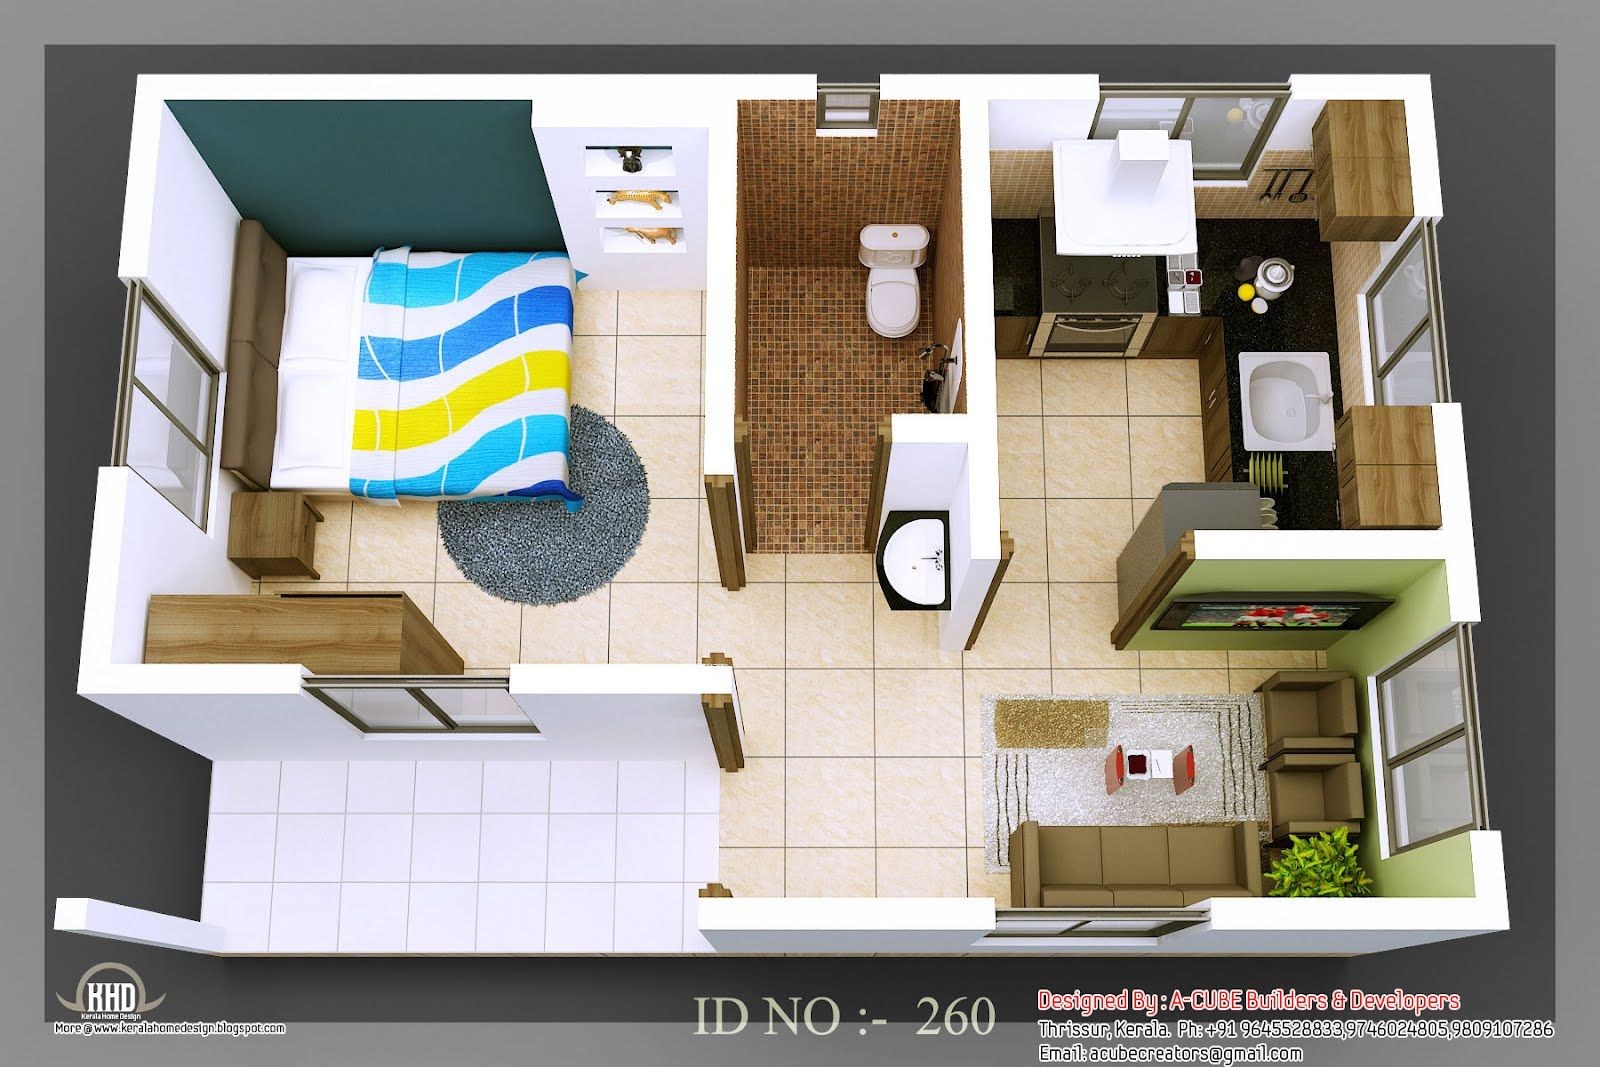 tiny homes 3d isometric views of small house plans indian home decor - Small Homes Plans